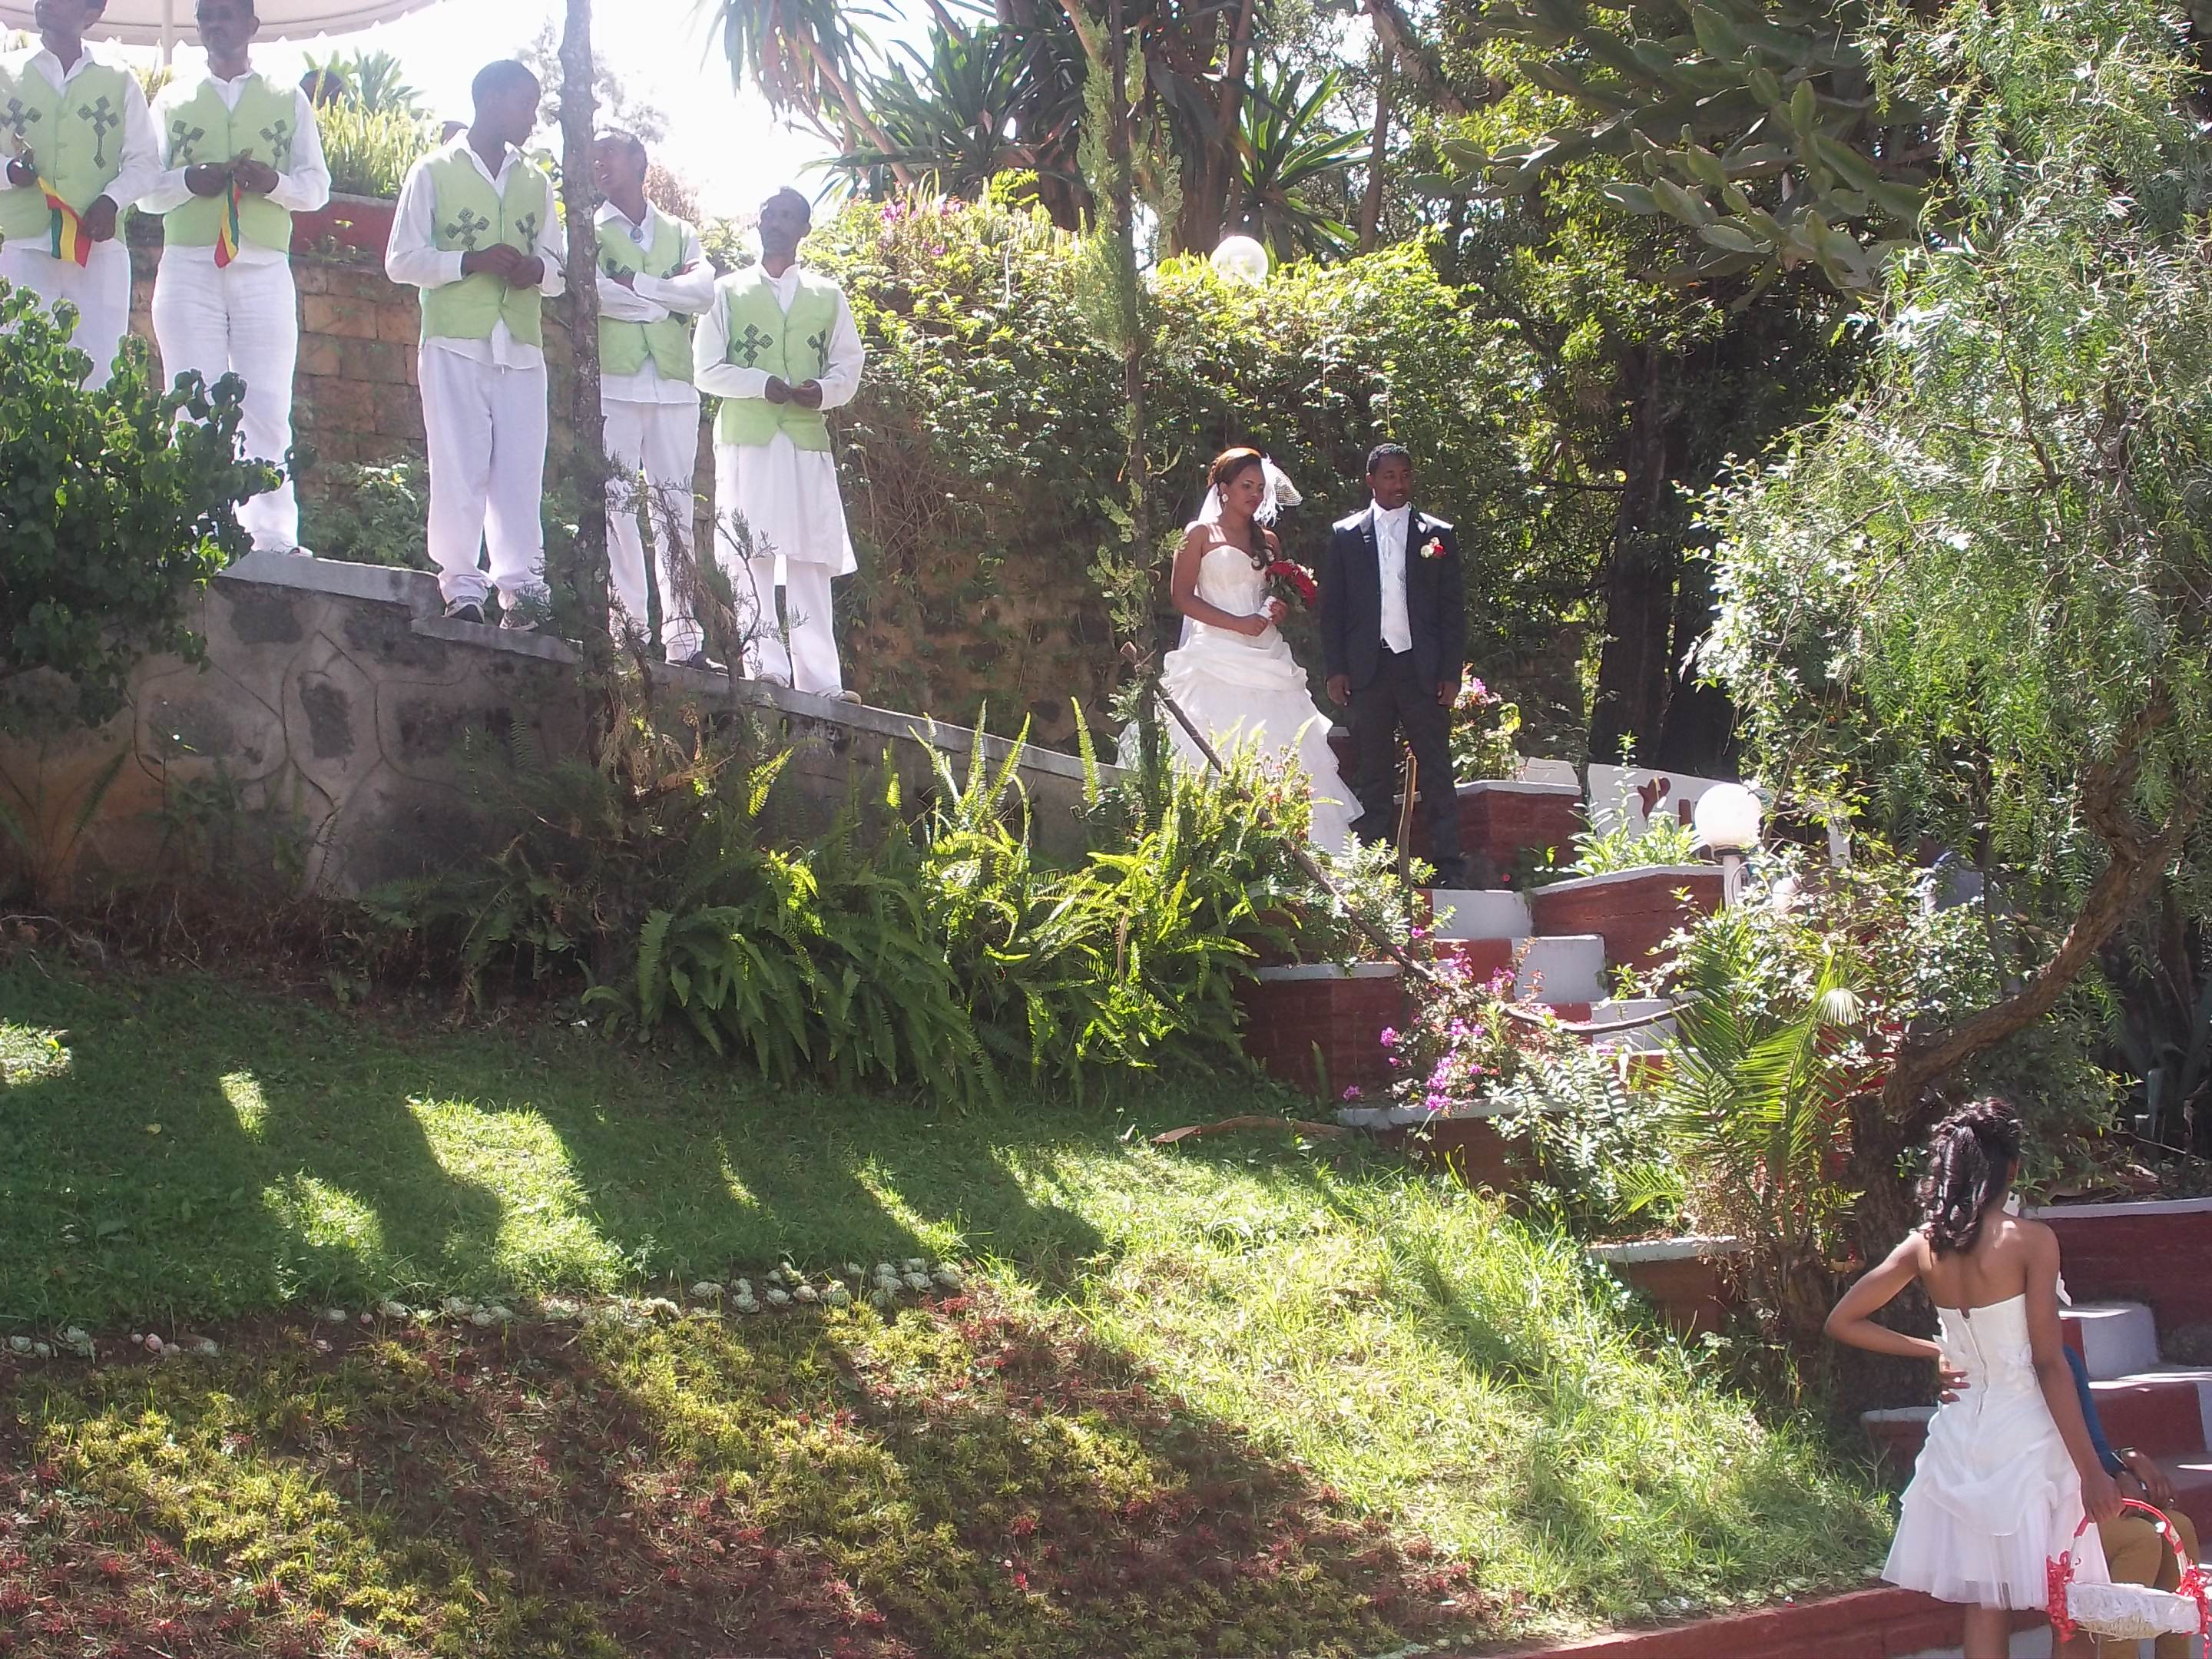 Addis Ababa Park Addis Ababa, The Addis Ababa City Weddings | Ethiopian Wanderlust